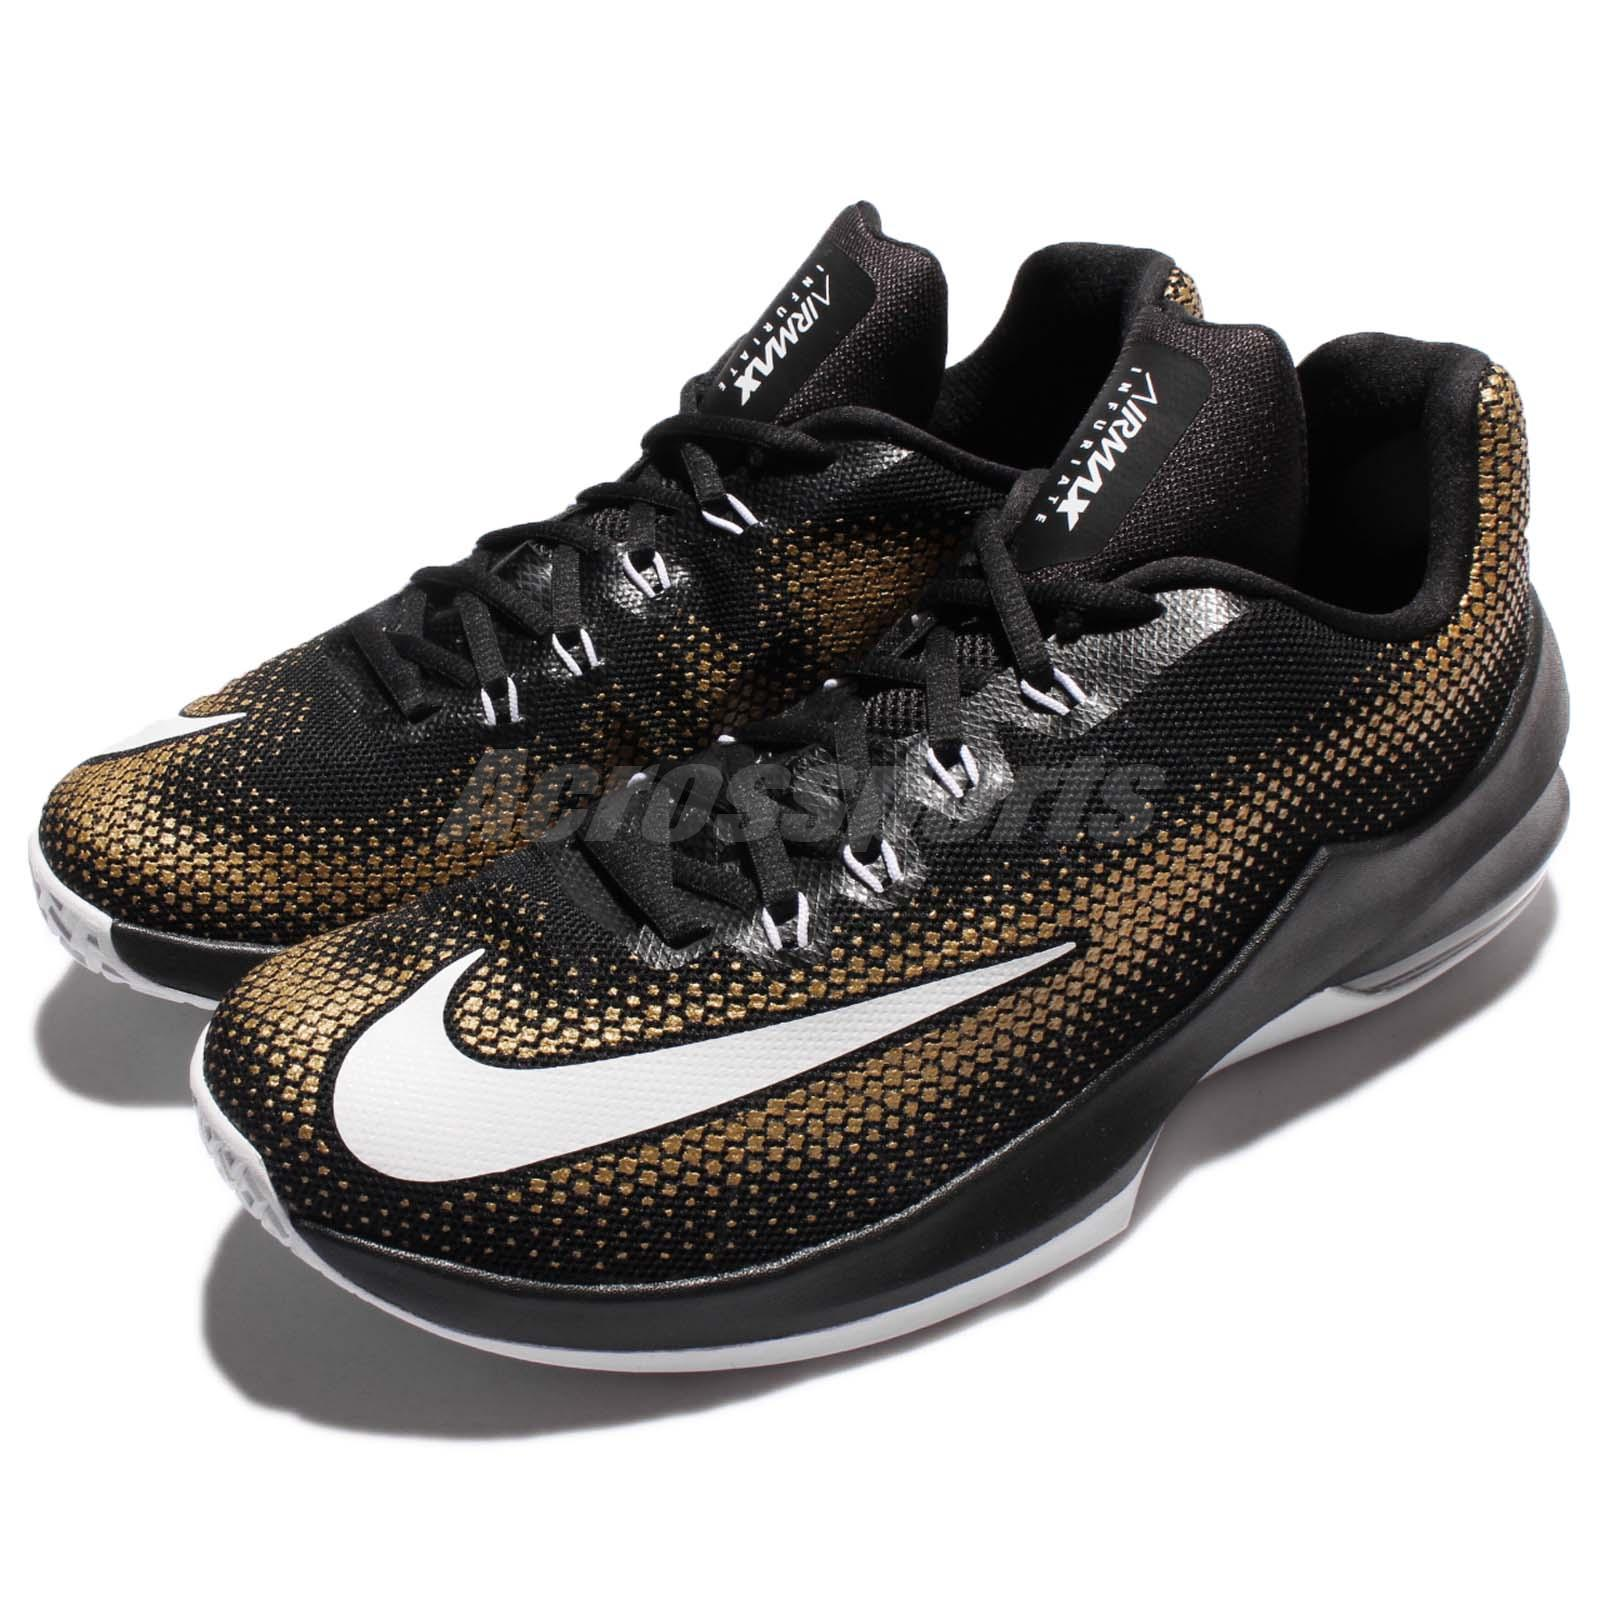 Find black and gold sneakers at ShopStyle. Shop the latest collection of black and gold sneakers from the most popular stores - all in one place.